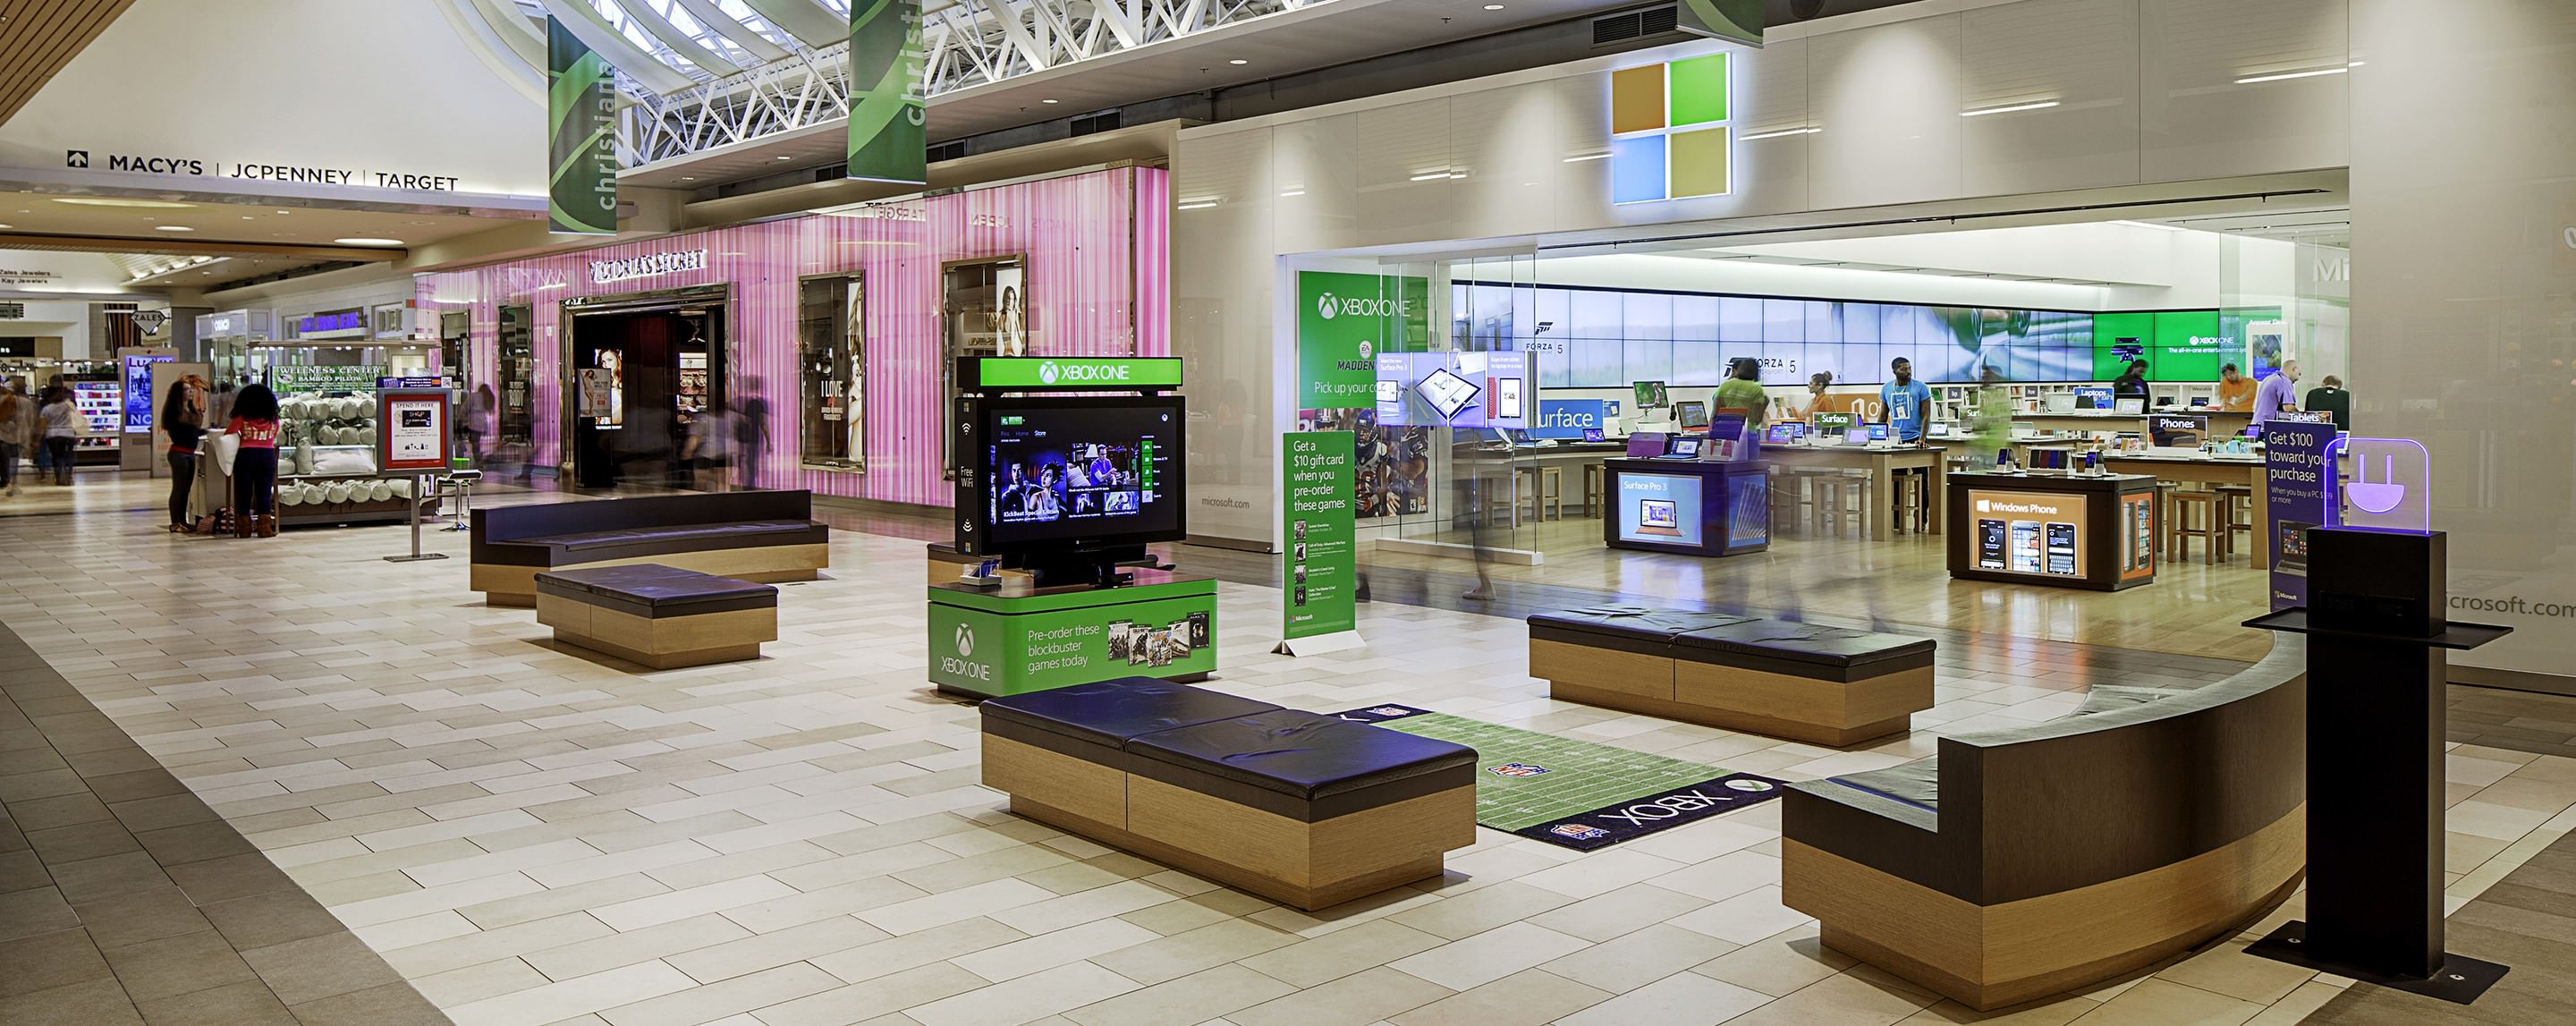 Sitting areas with televisions sit in the hallway of a shopping mall near a Victoria's Secret store.